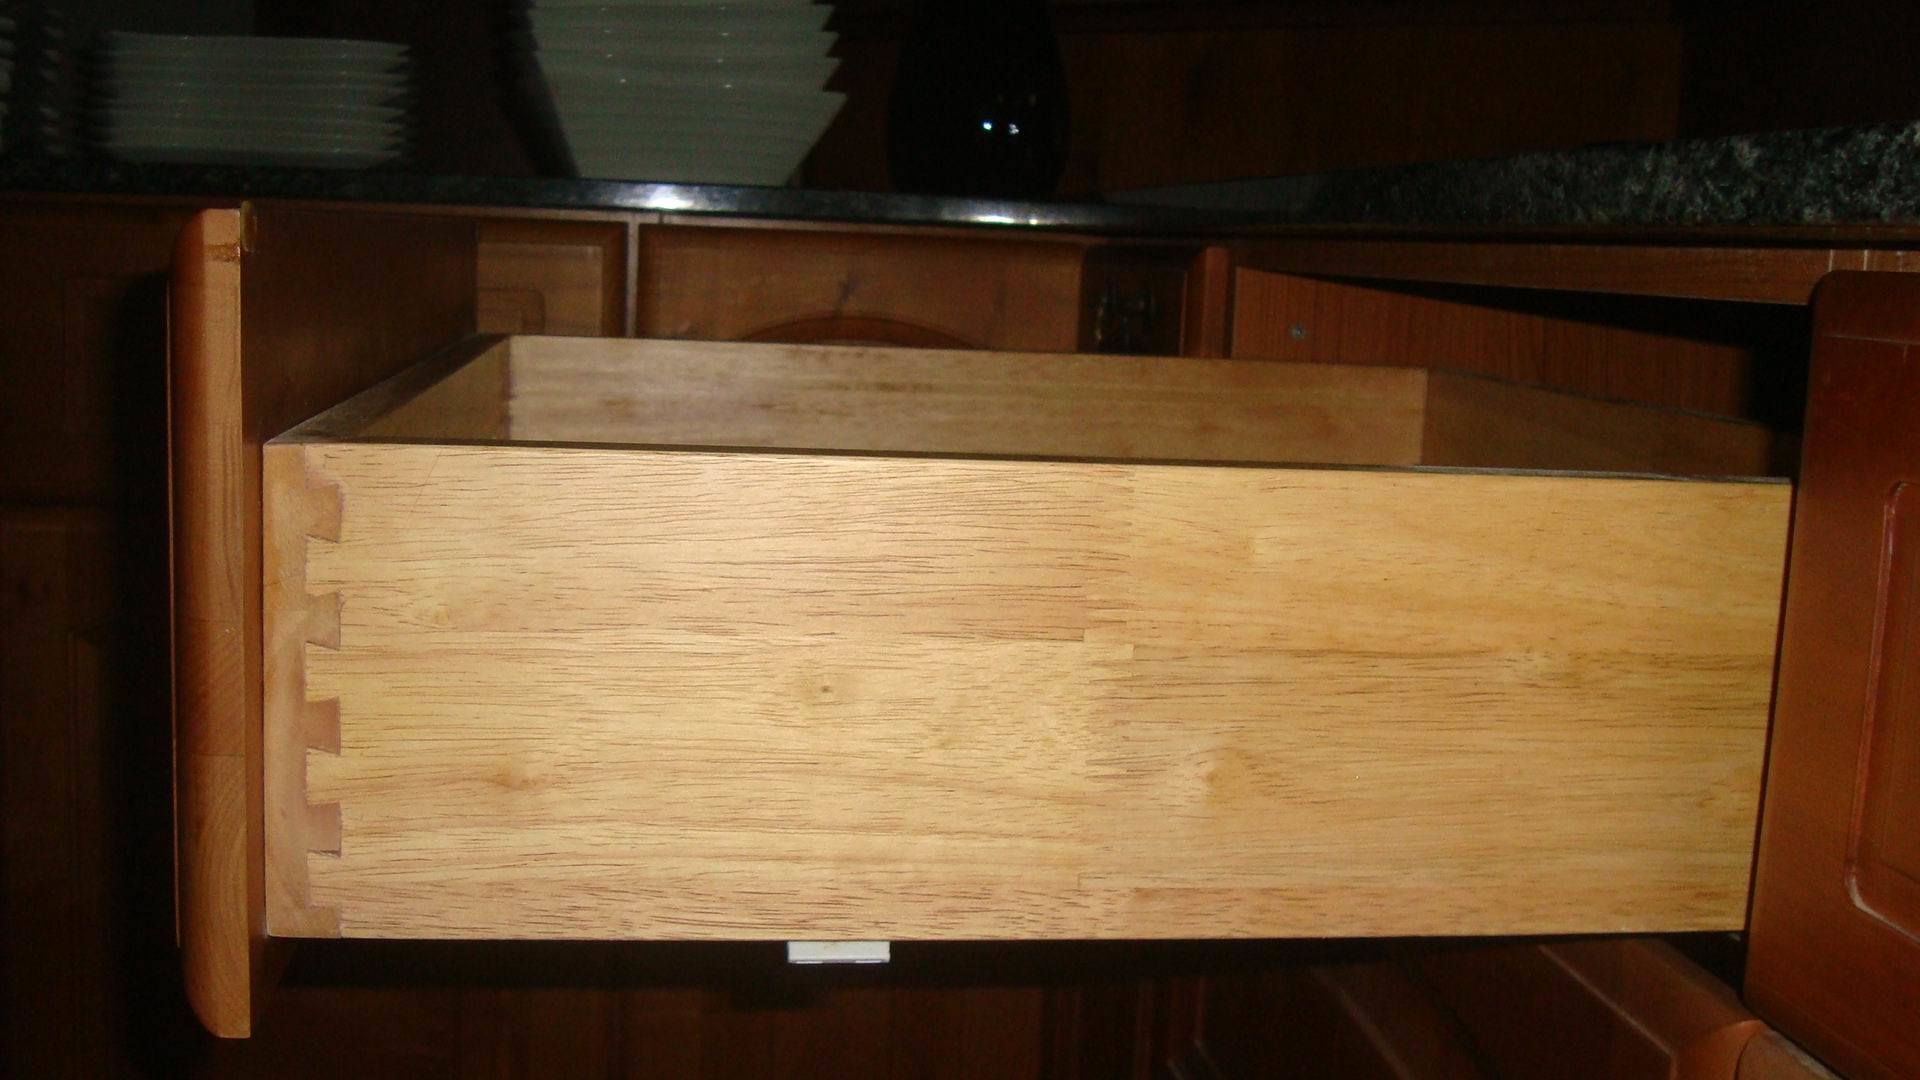 1080 #693816 China North American Maple Solid Wood Kitchen Cabinet Photos  save image Solid Maple Doors 10271920